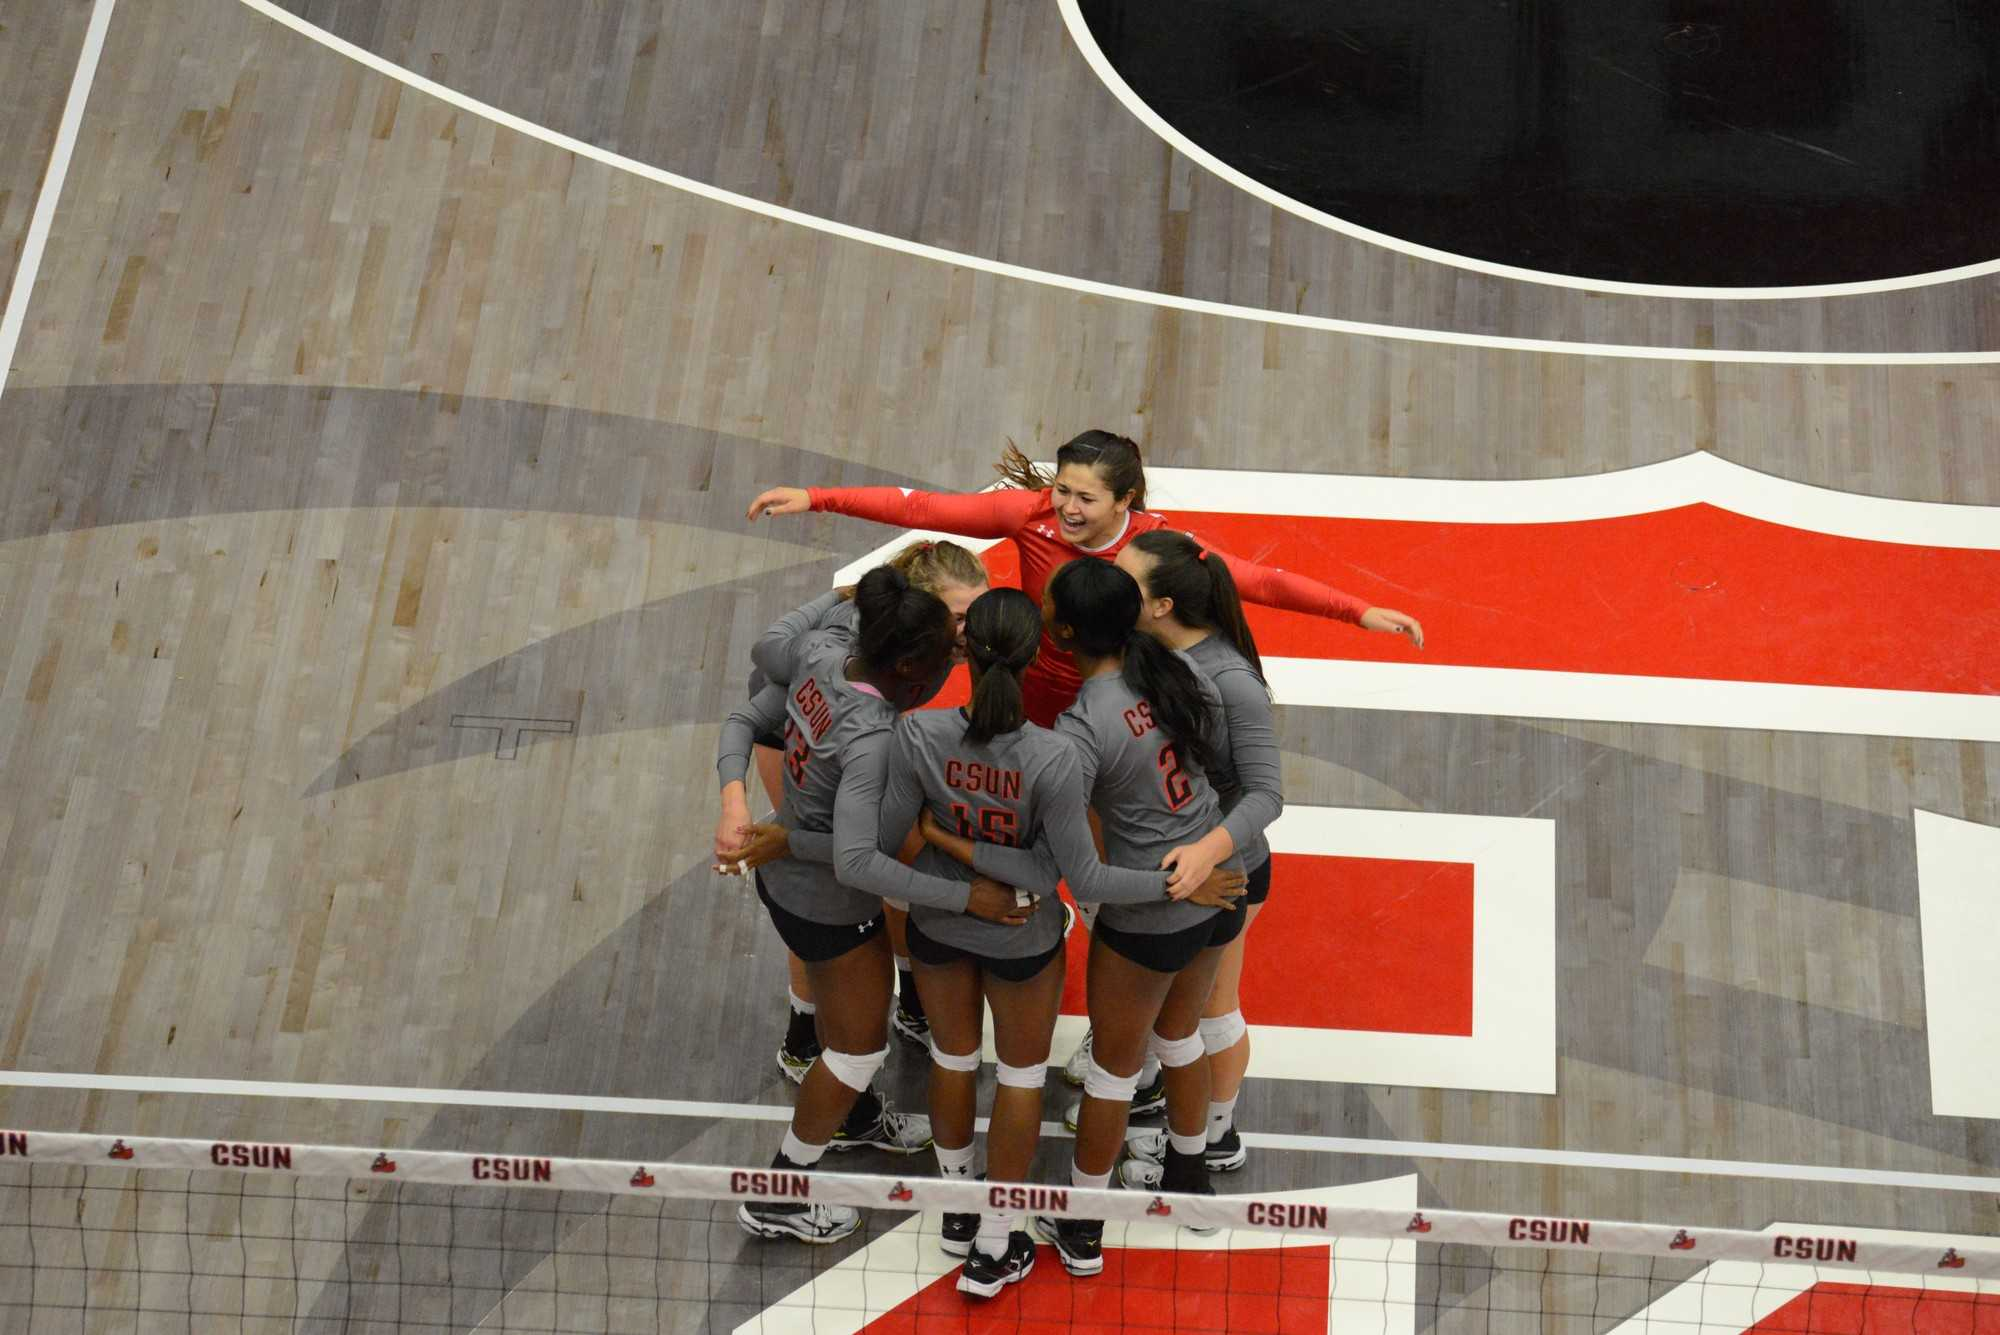 CSUN+volleyball+players+group+together+in+a+huddle